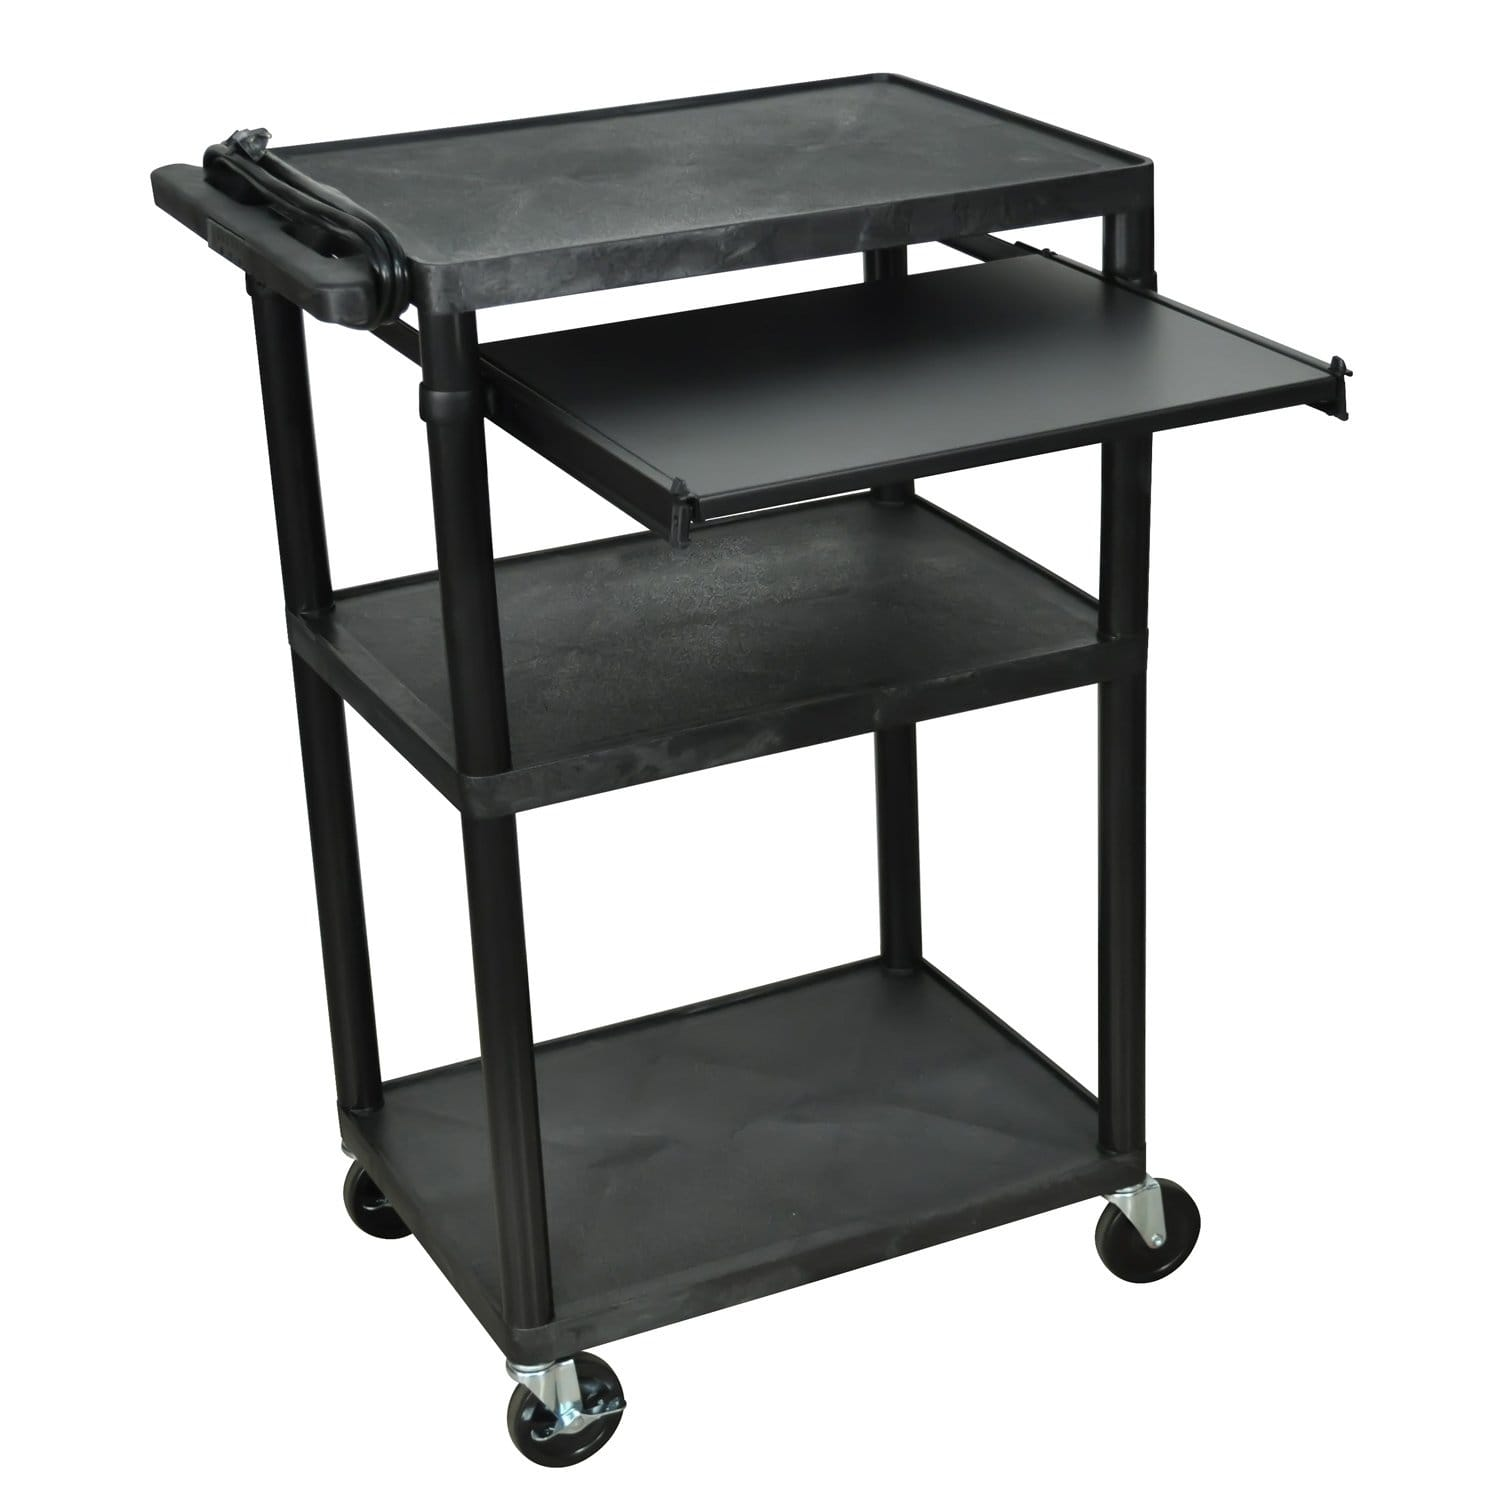 Offex  OF-LP42LE-B Endura Black 3 Shelves Heavy Duty AV Utility Cart with Pull Out Shelf